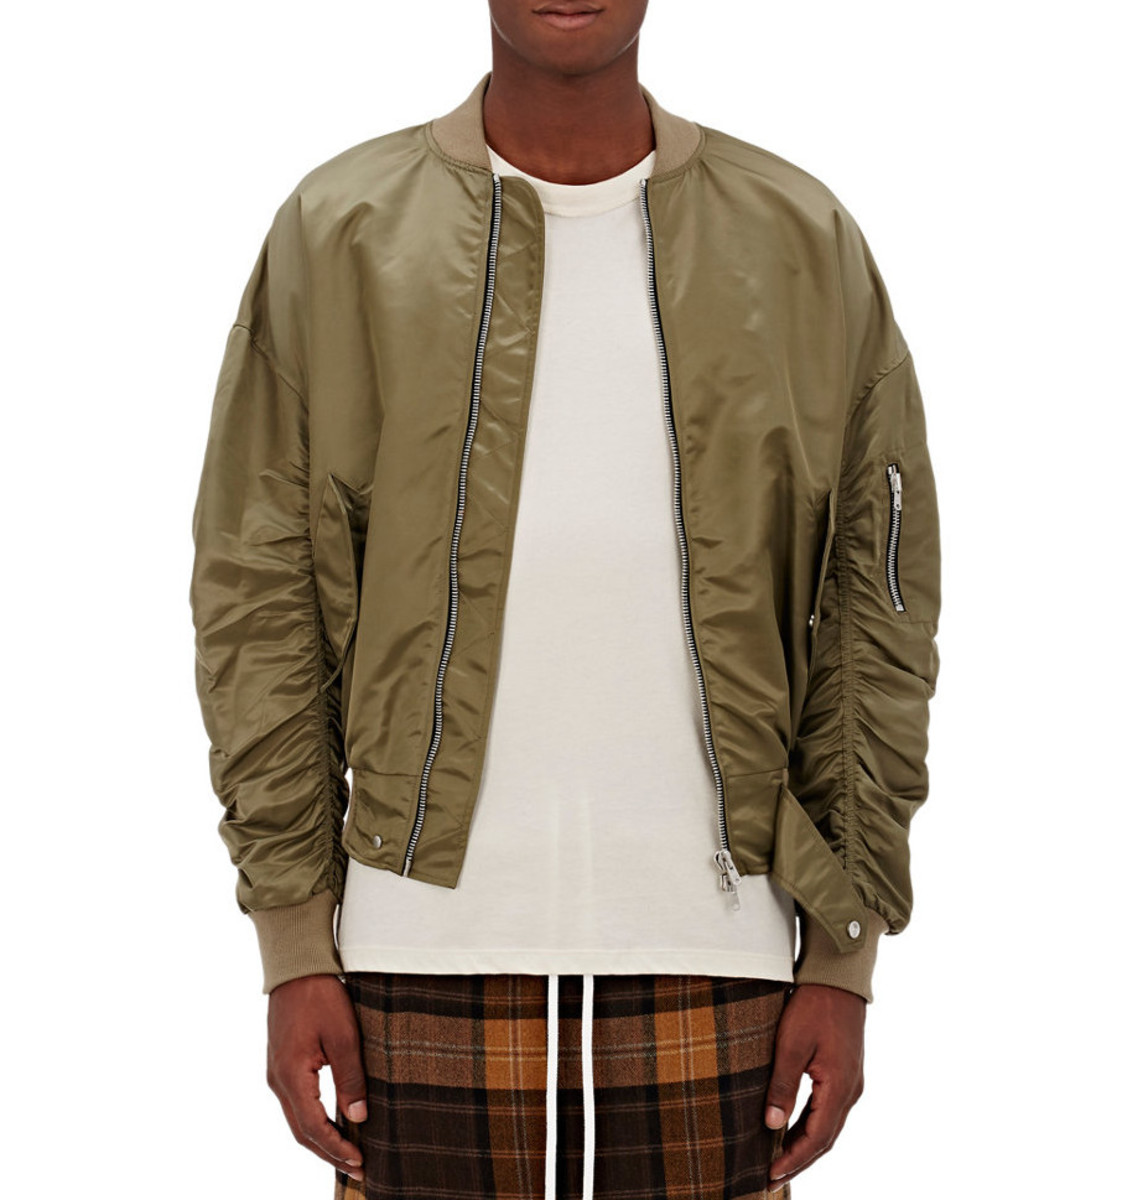 fear-of-god-bomber-jacket.jpg